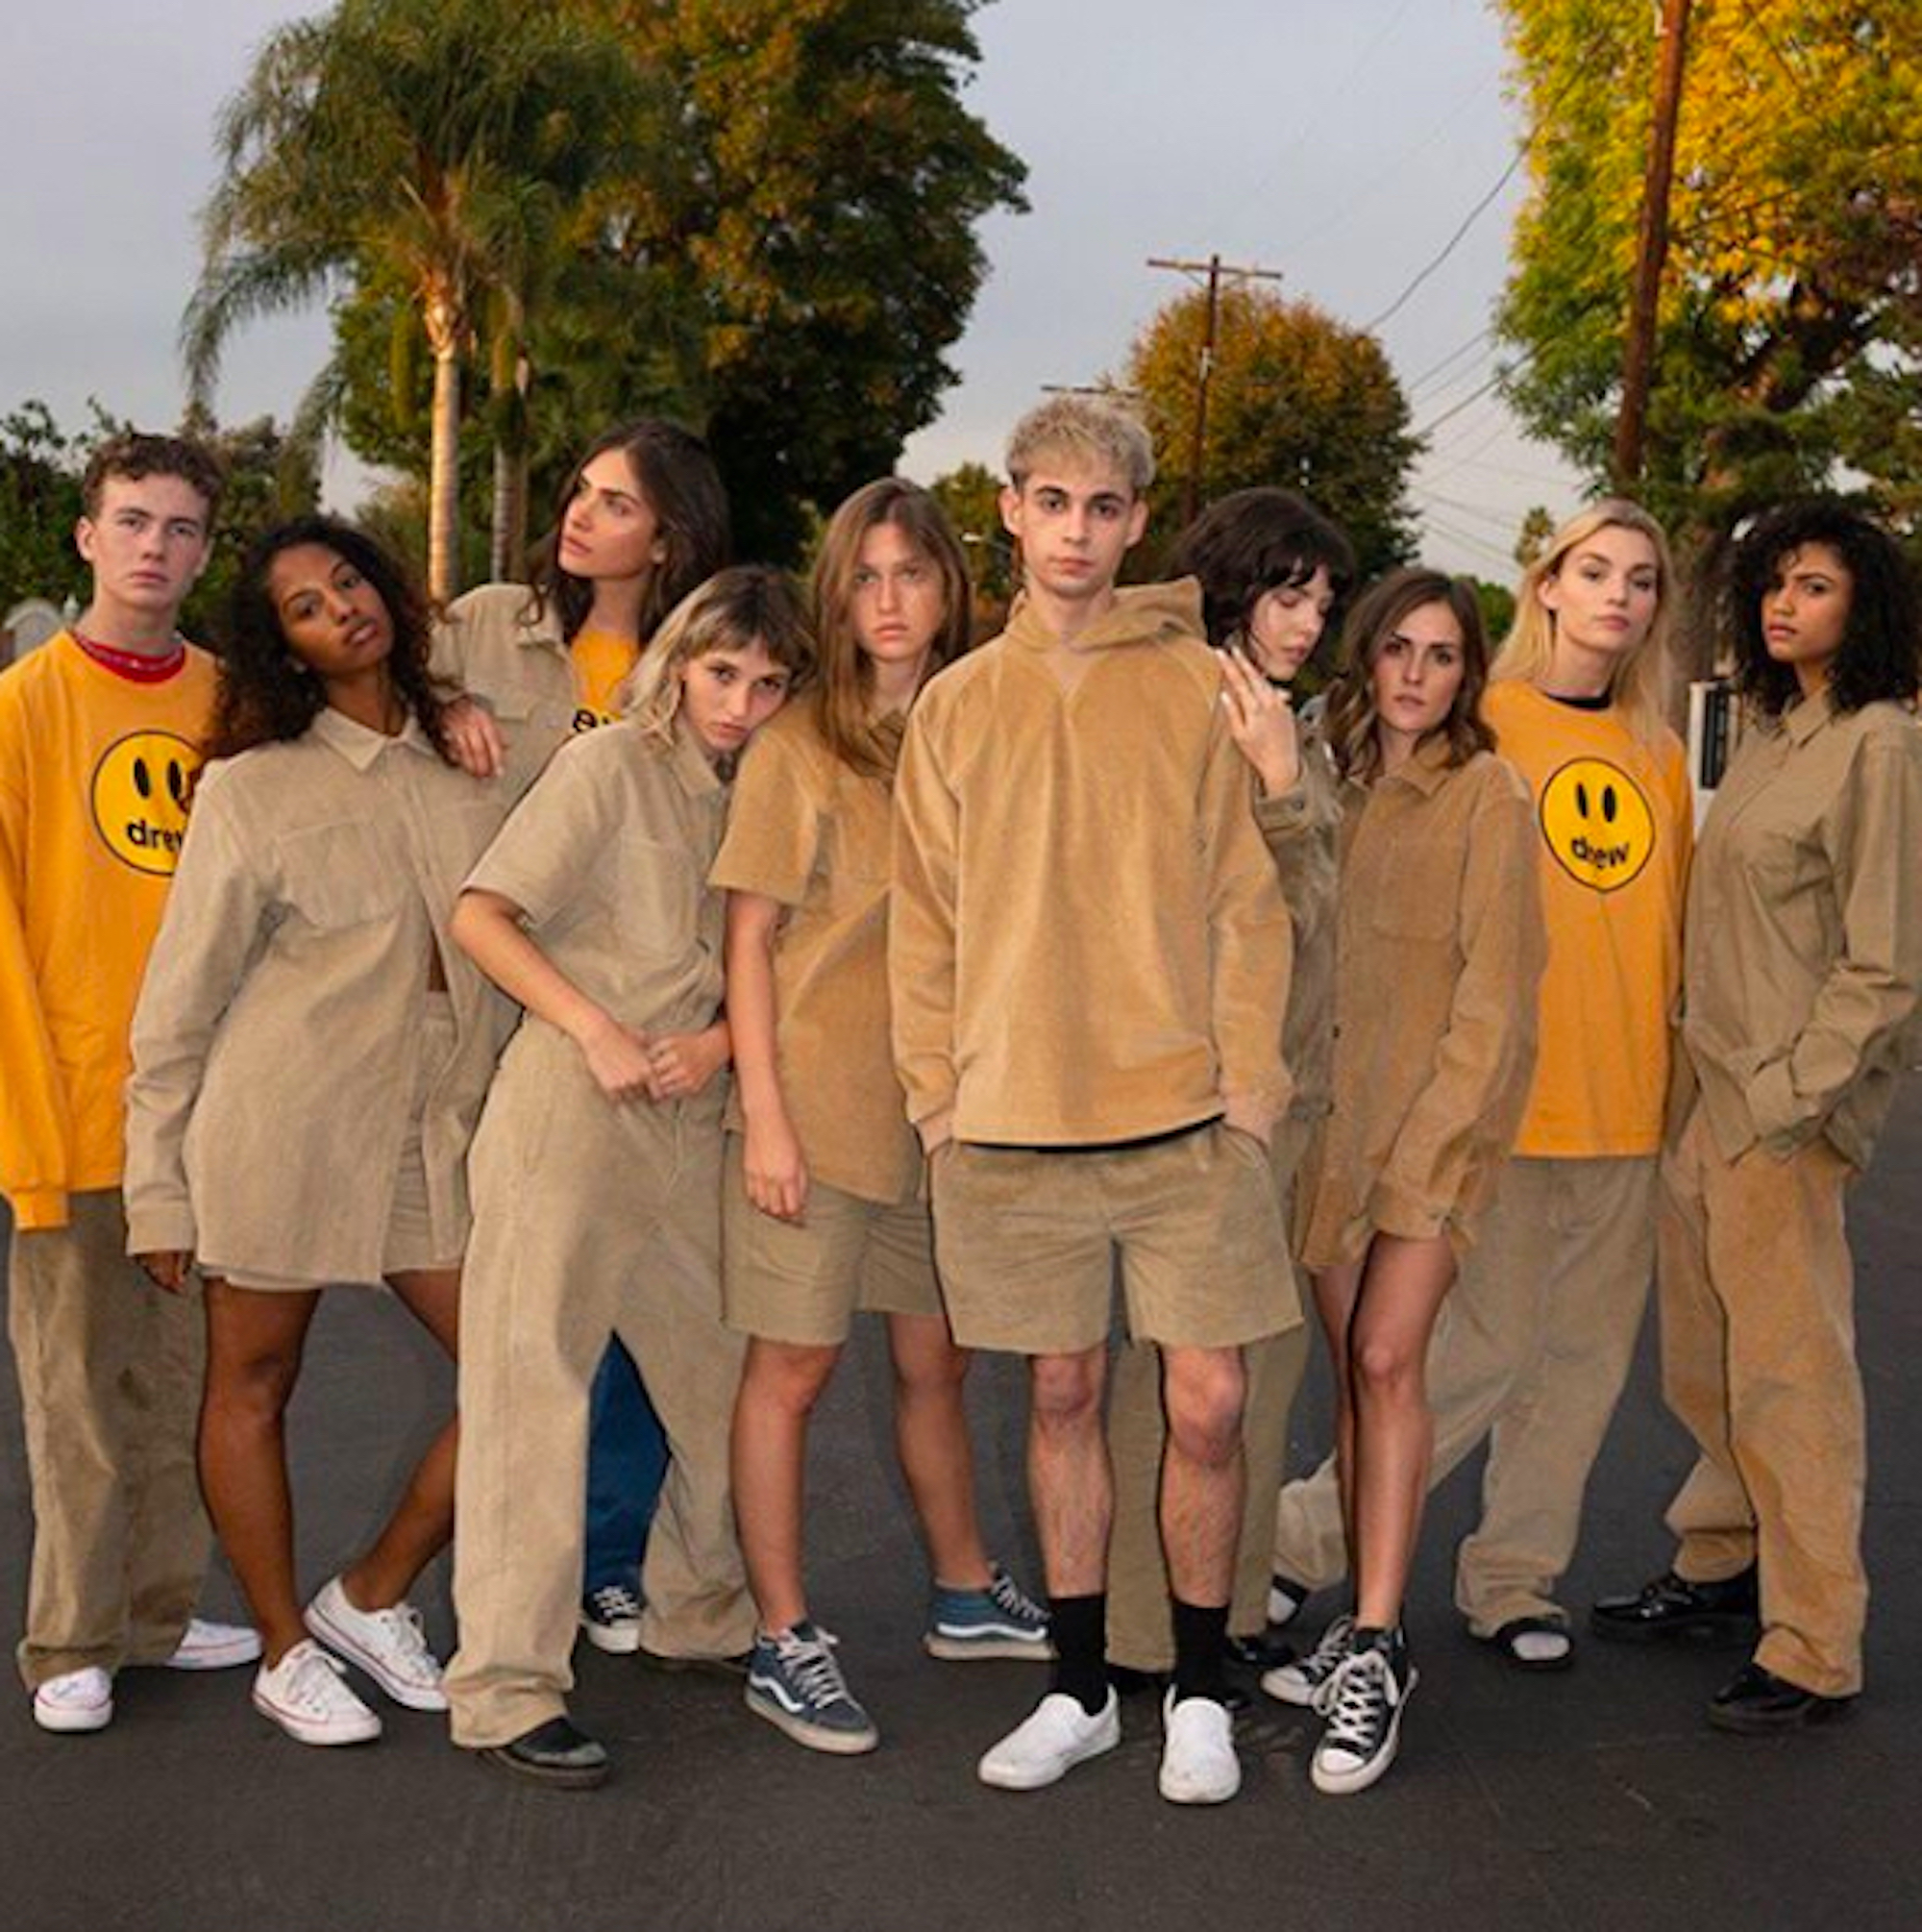 Justin Bieber's Drew House lookbook imagery